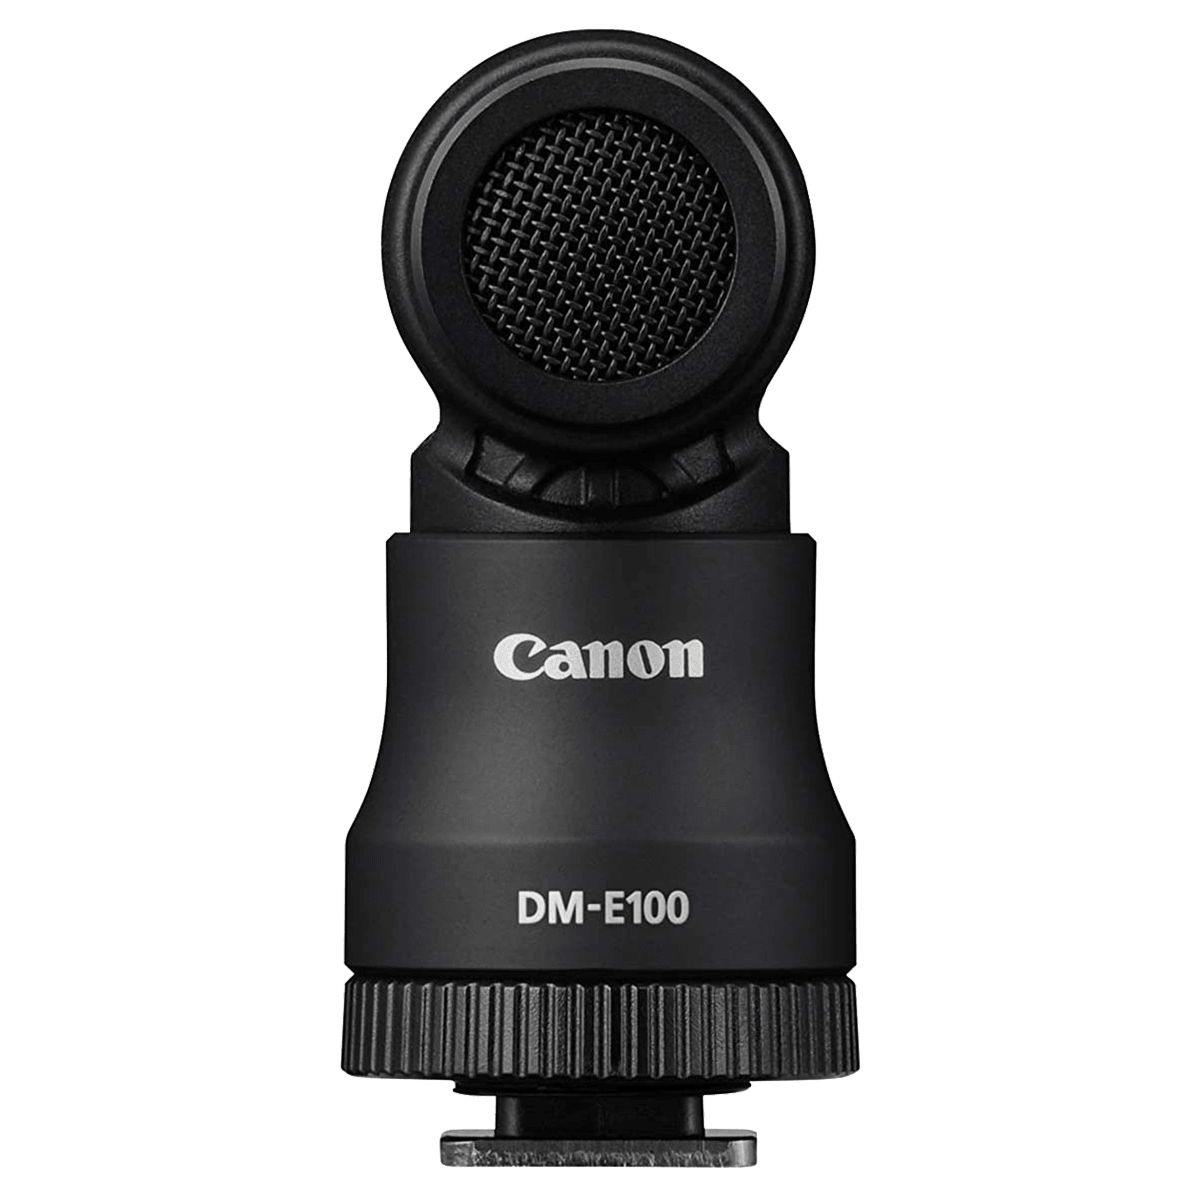 Canon DM-E100 Mic For DSLR Camera (Unidirectional Stereo Recording, 4474C001AA, Black)